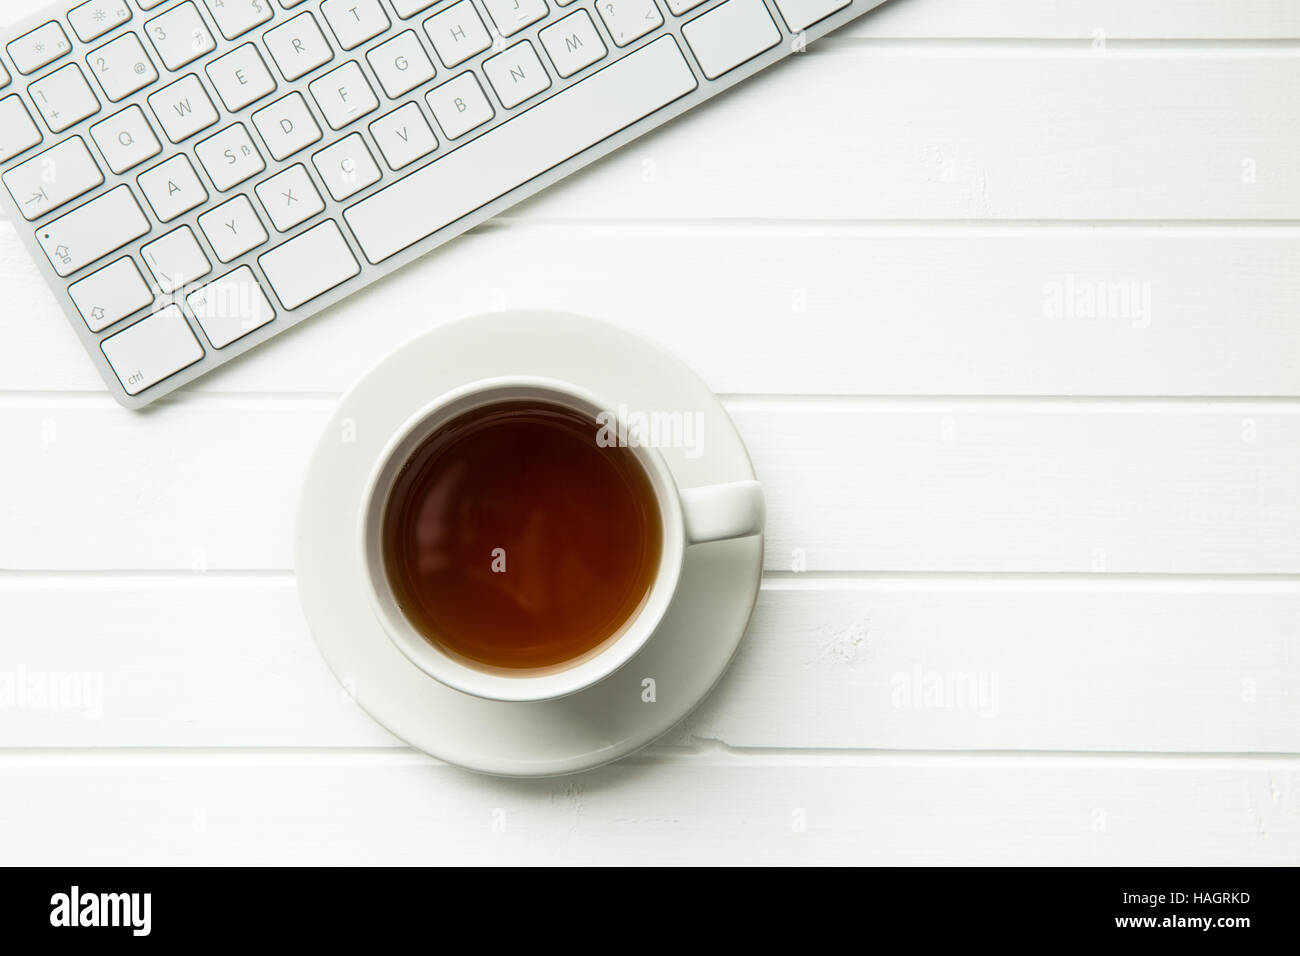 Cup of tea and computer keyboard on white table. Top view. - Stock Image